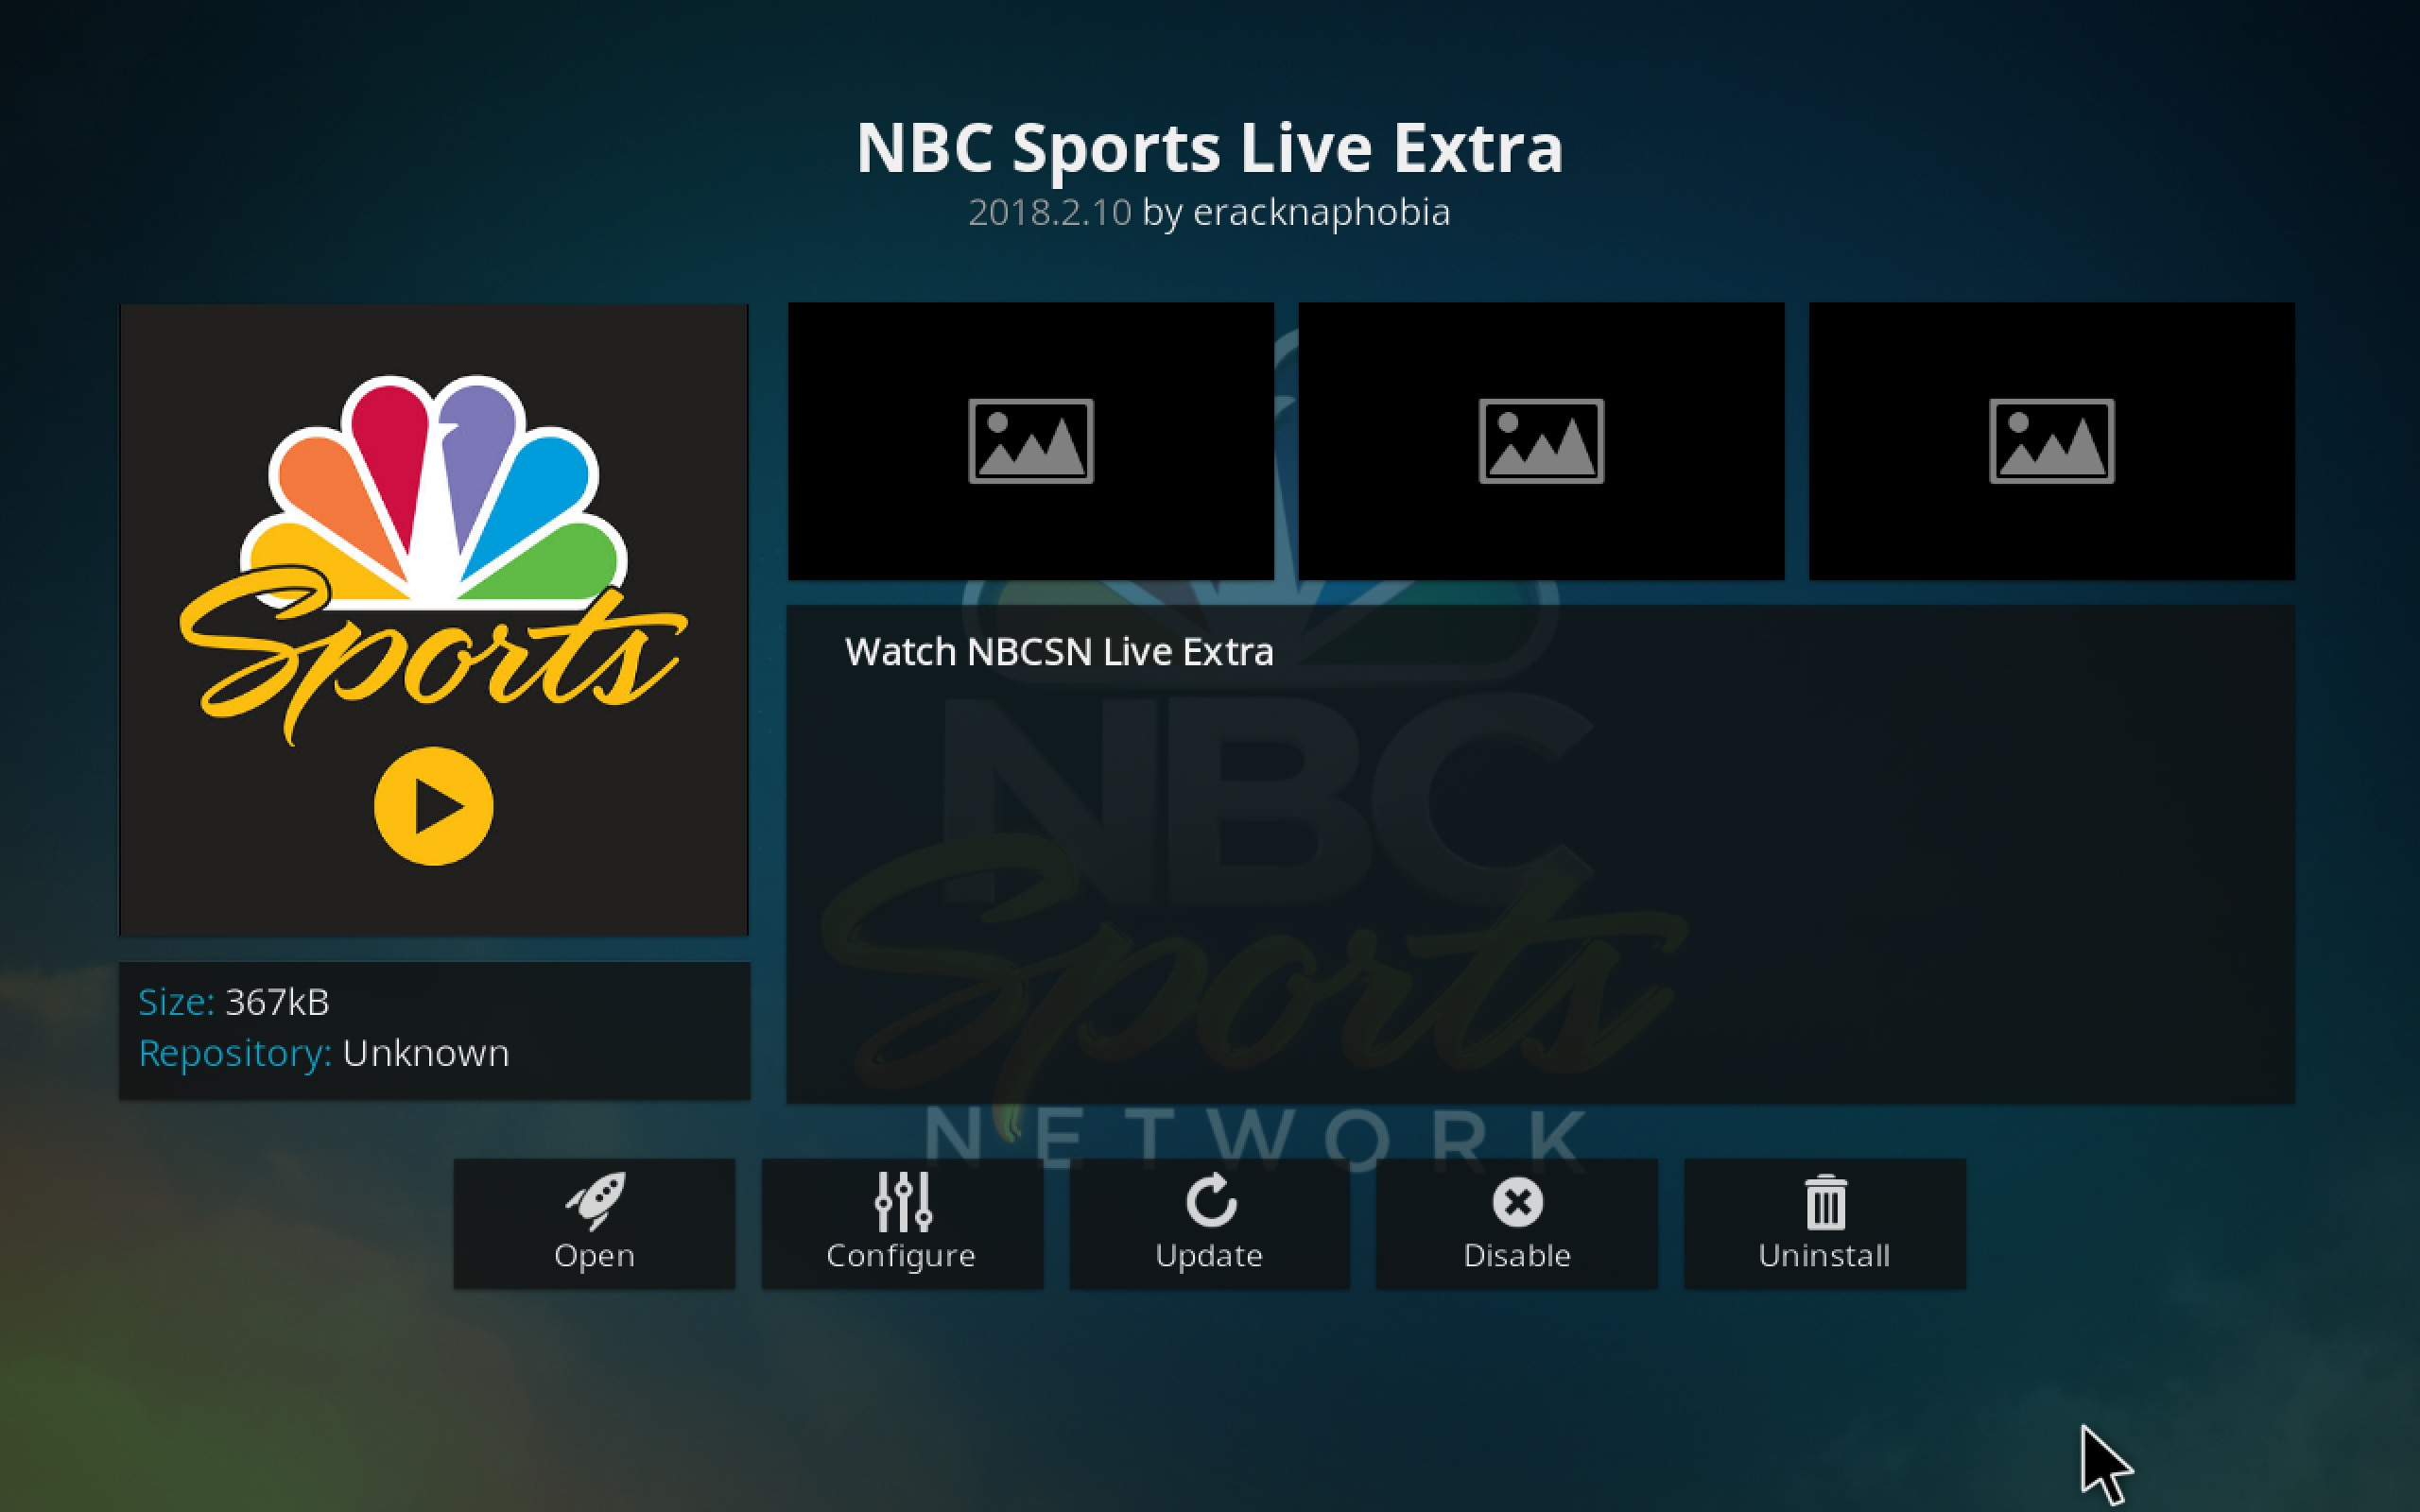 nbcsports.com/activate - Activate NBC Sports On Any Device